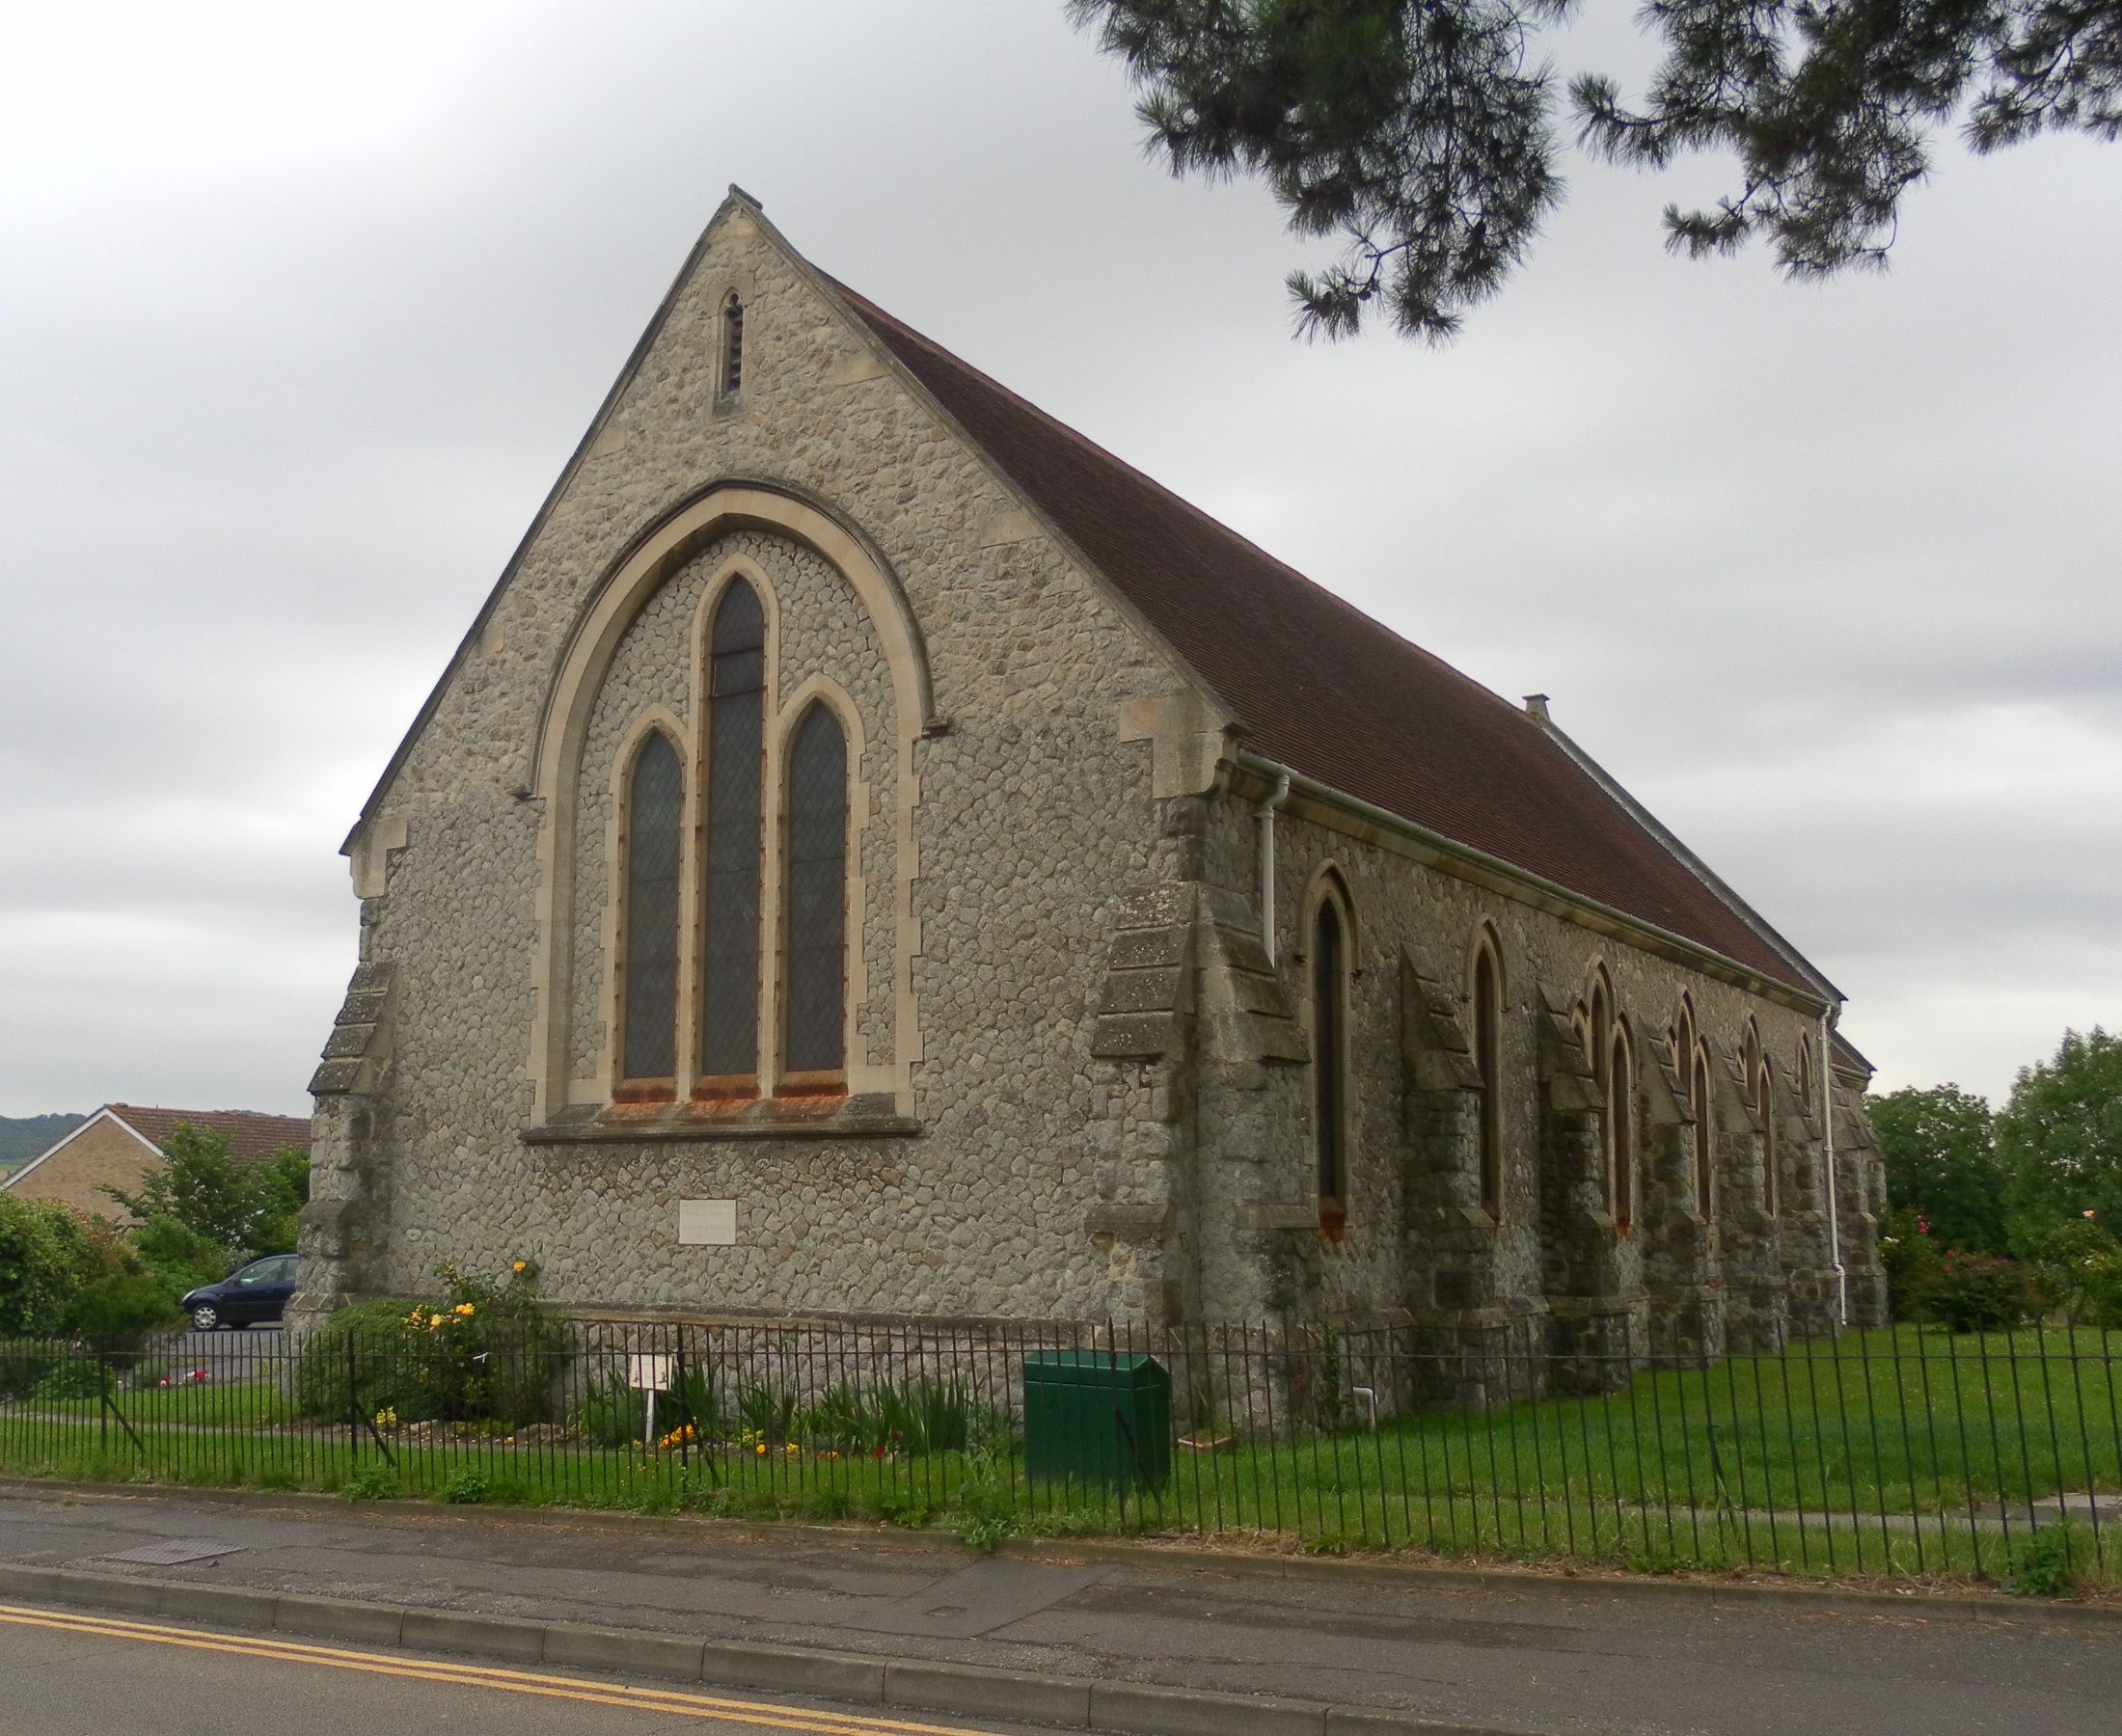 File:Christ Church, Snodland.JPG - Wikimedia Commons